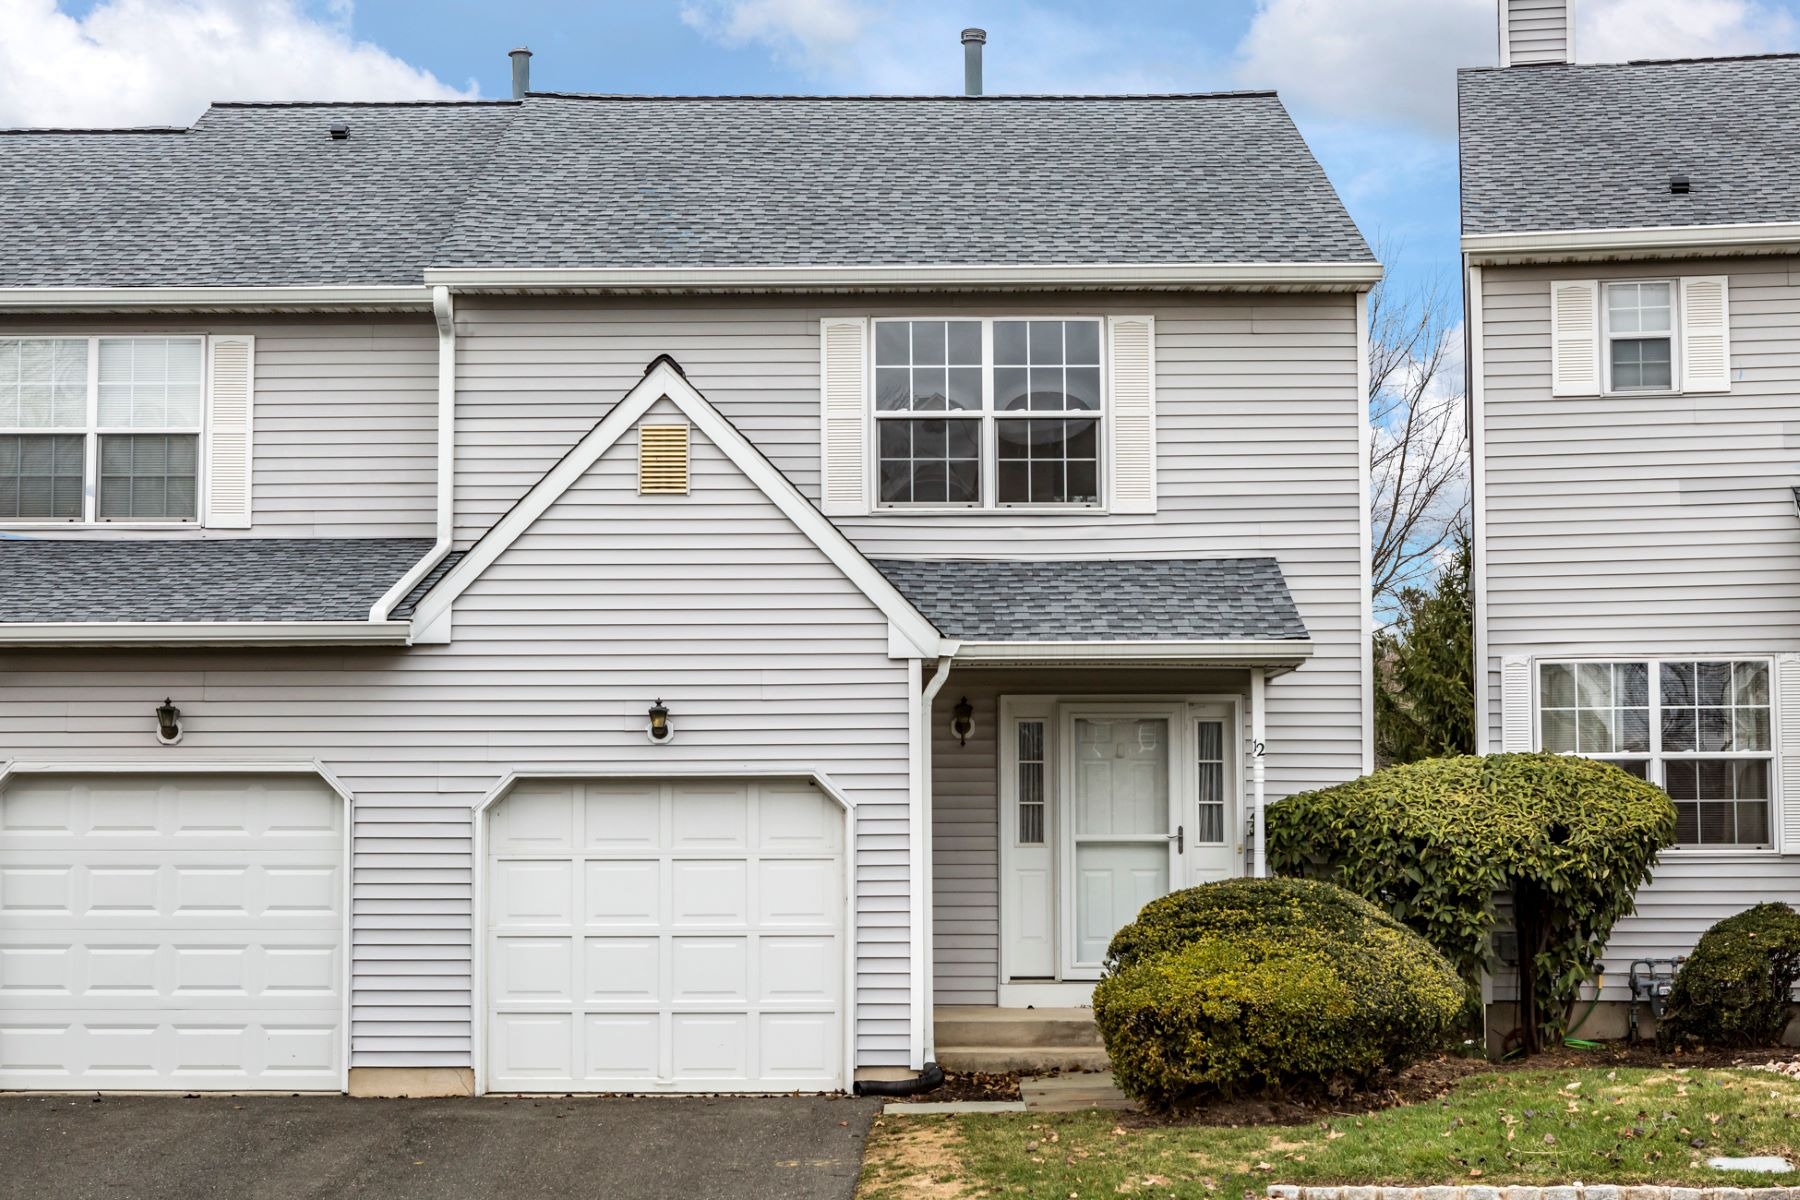 Townhouse for Sale at Comfortable, Informal Townhome Living 12 Crockett Lane, Ewing, New Jersey 08628 United States